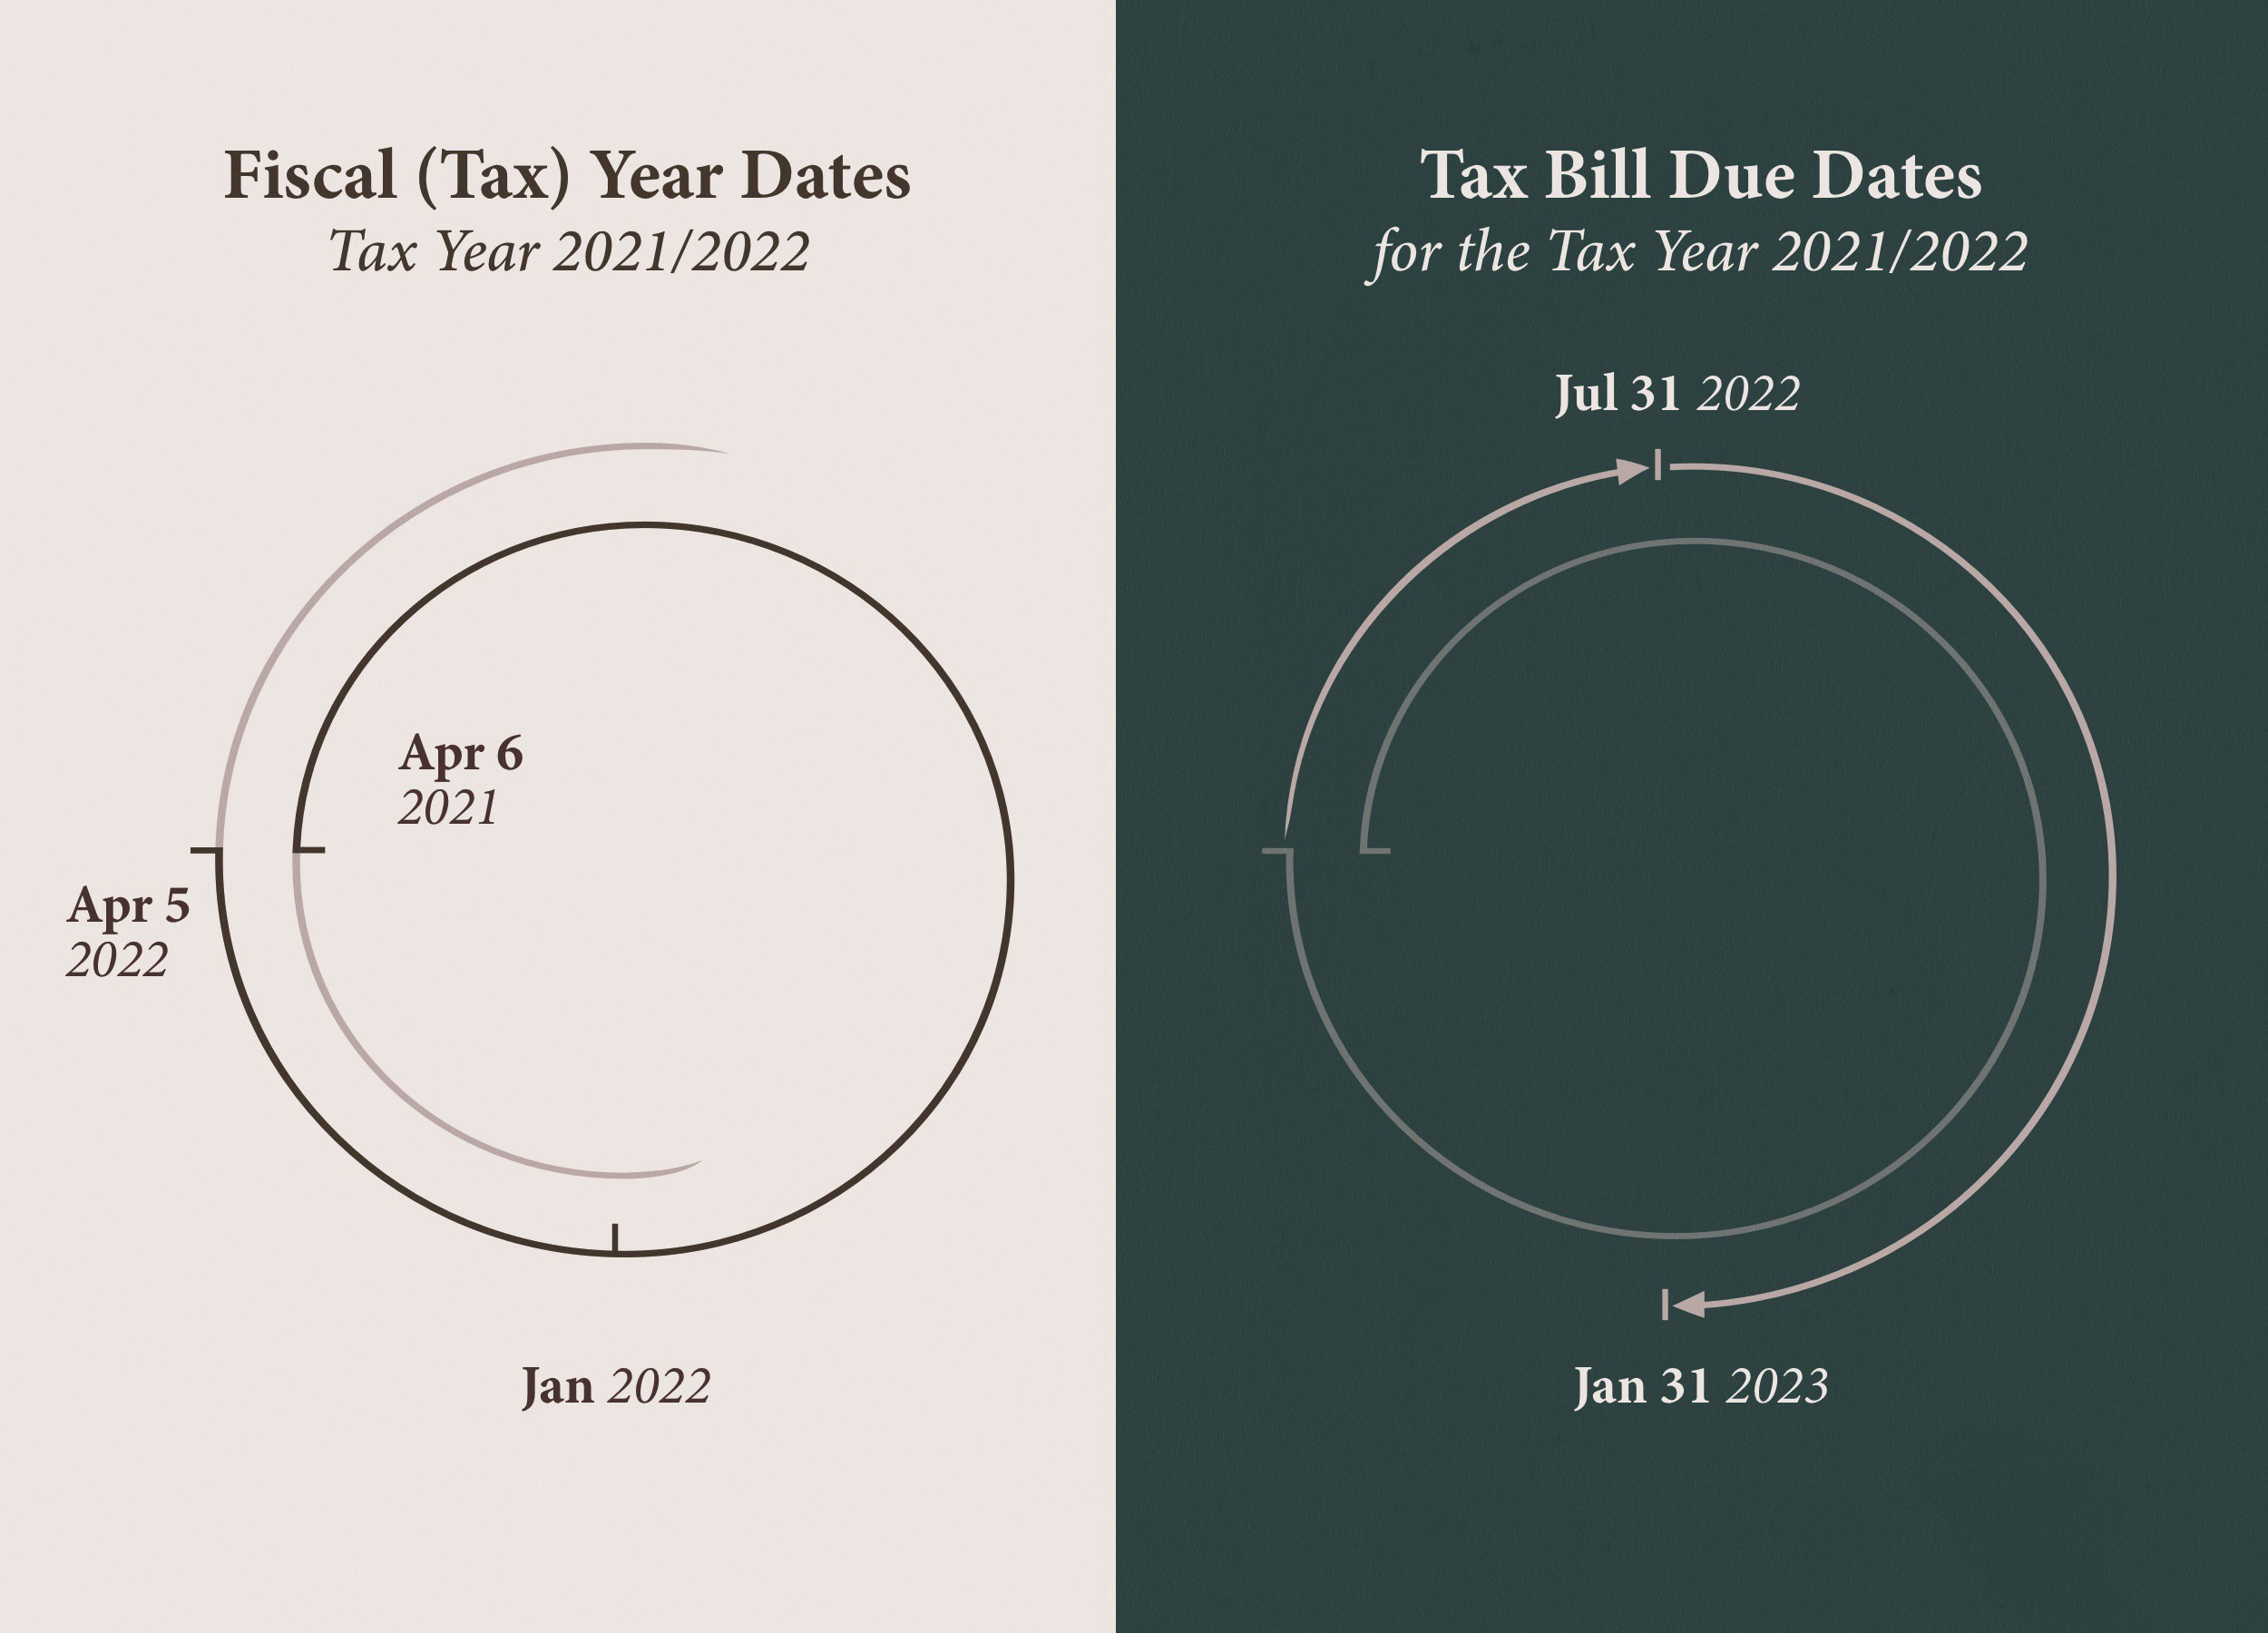 A graph with UK tax year dates and deadlines